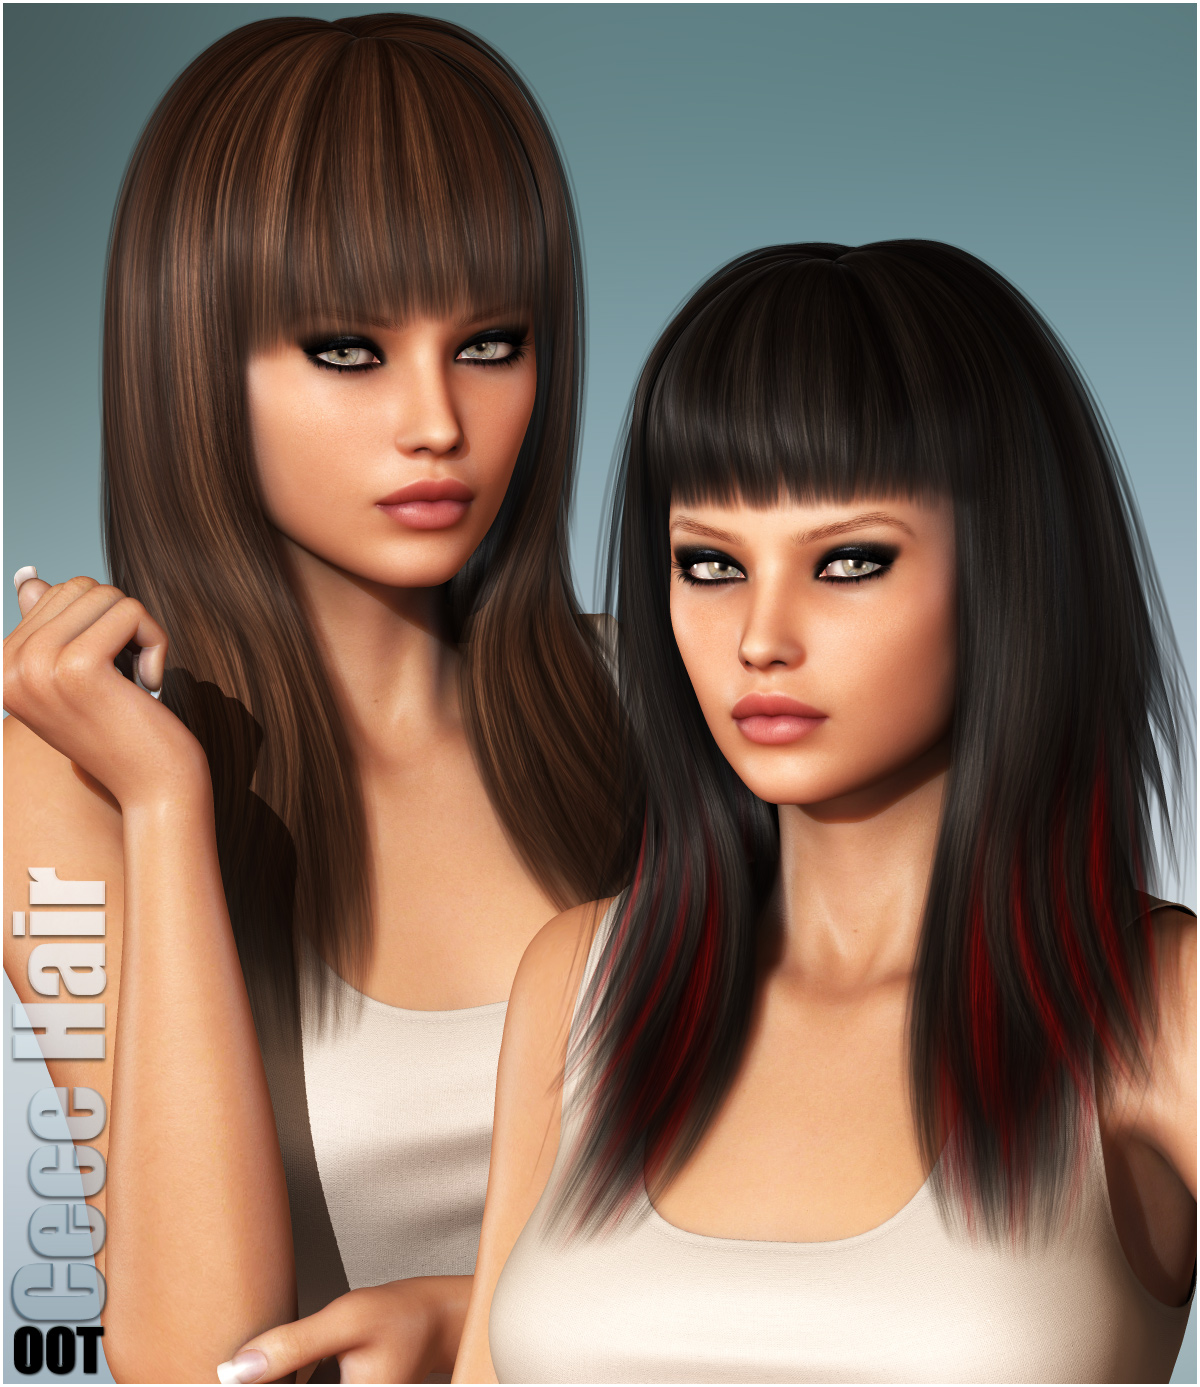 Cece Hair and OOT Hairblending - Extended License